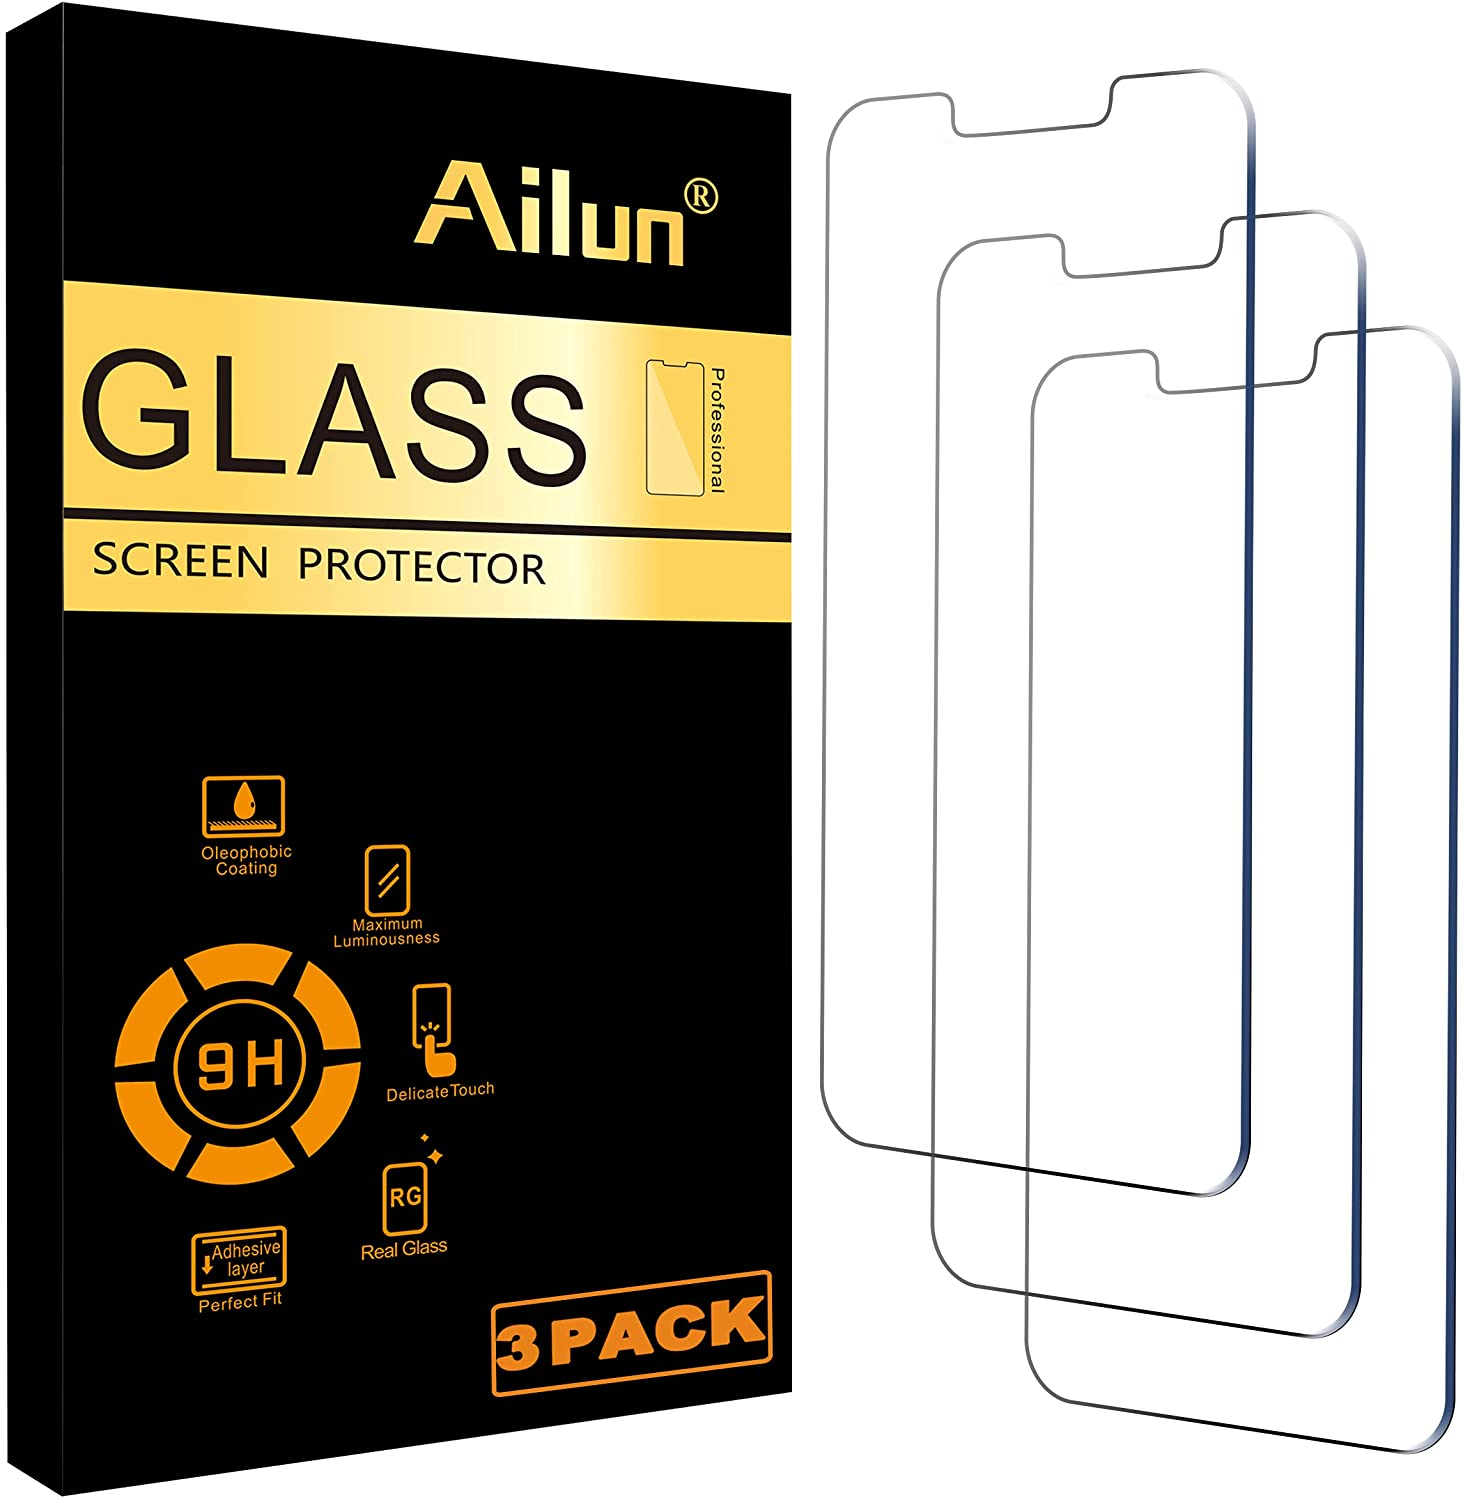 Ailun Glass Screen Protector Compatible for iPhone 13/13 Pro [6.1 Inch] Display 3 Pack Case Friendly Tempered Glass